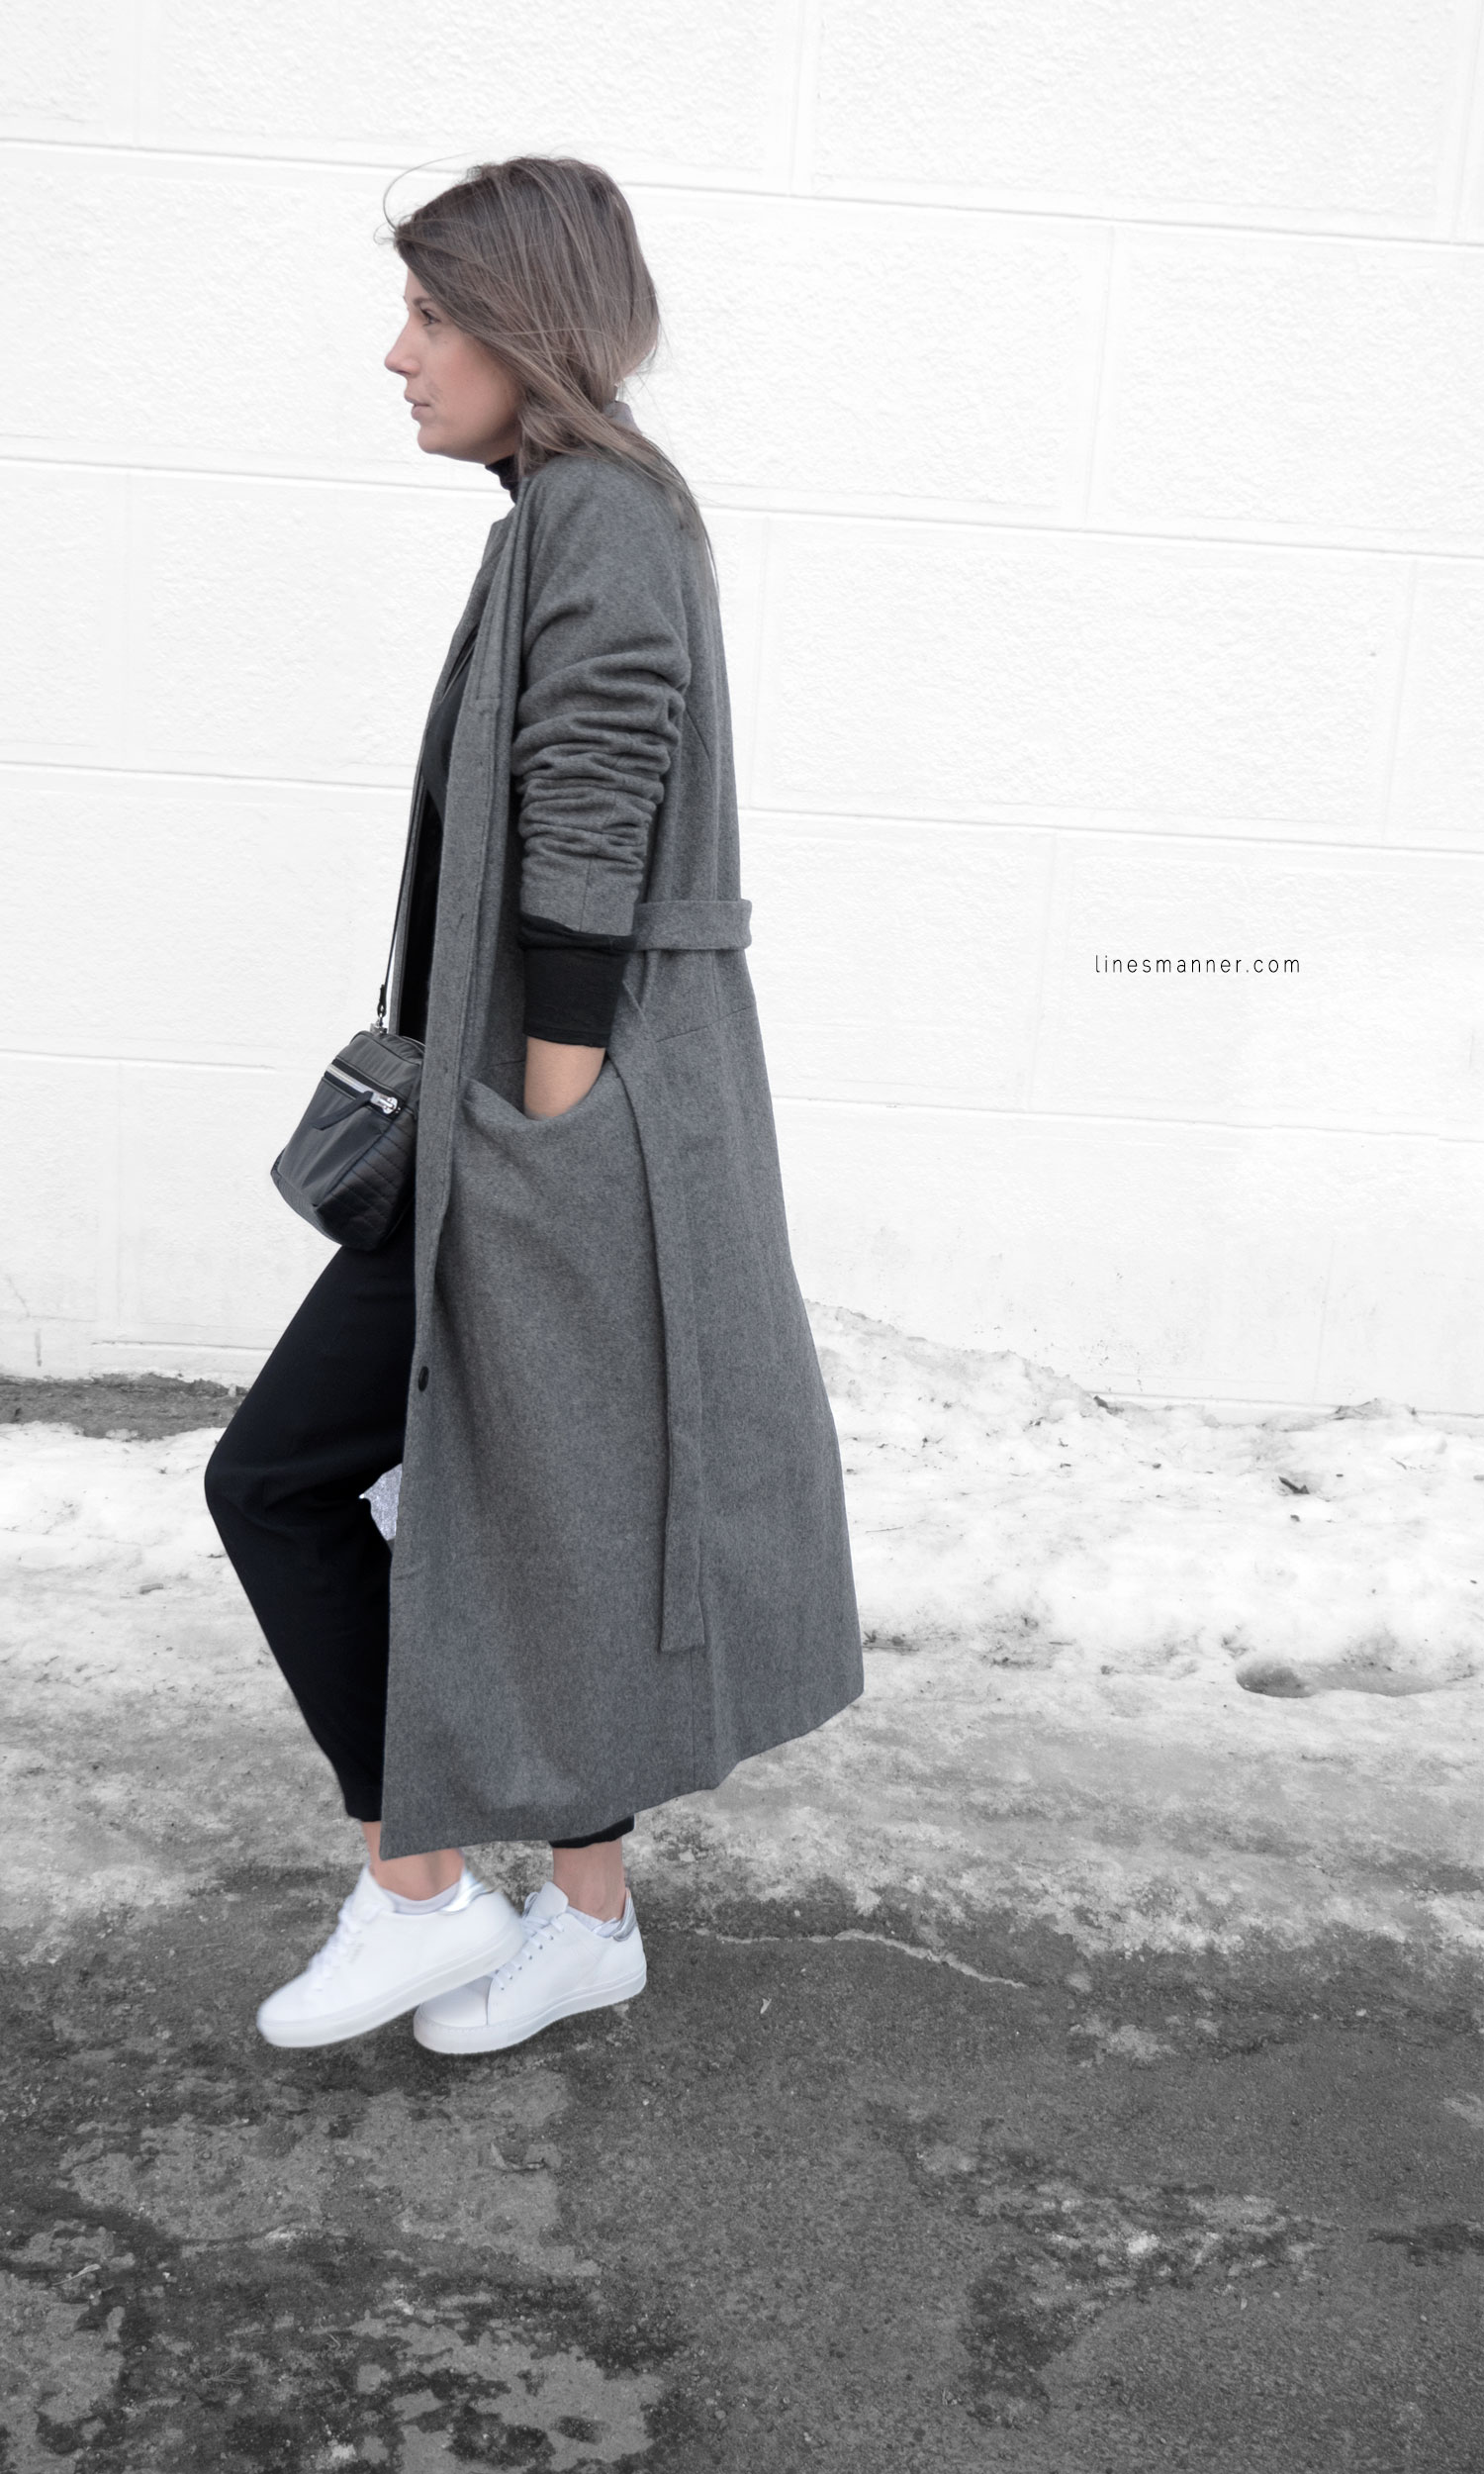 Lines-Manner-Simplicity-Neutral-Palette-Functional-Versatile-Timeless-Grey-Winter_Coat-Details-Essentials-Minimal-Basics-7